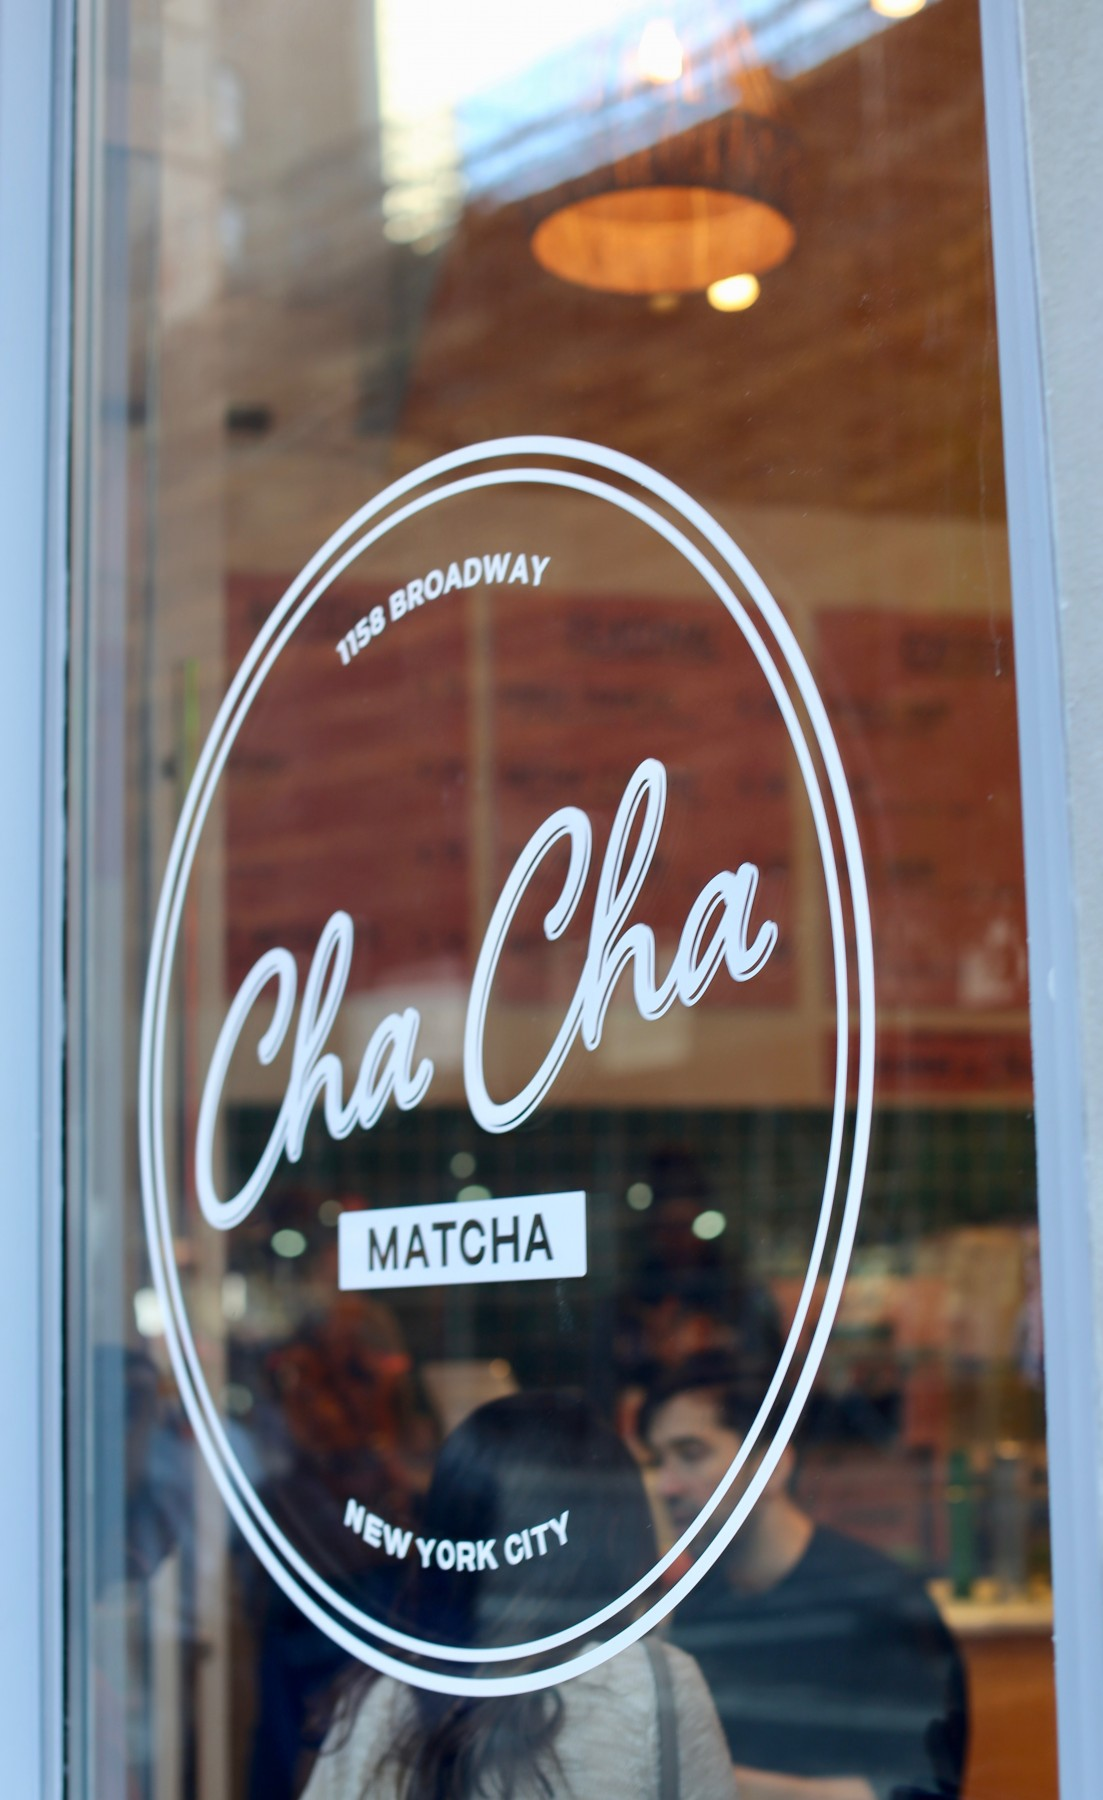 cha cha matcha new york blog upupup.fr 3